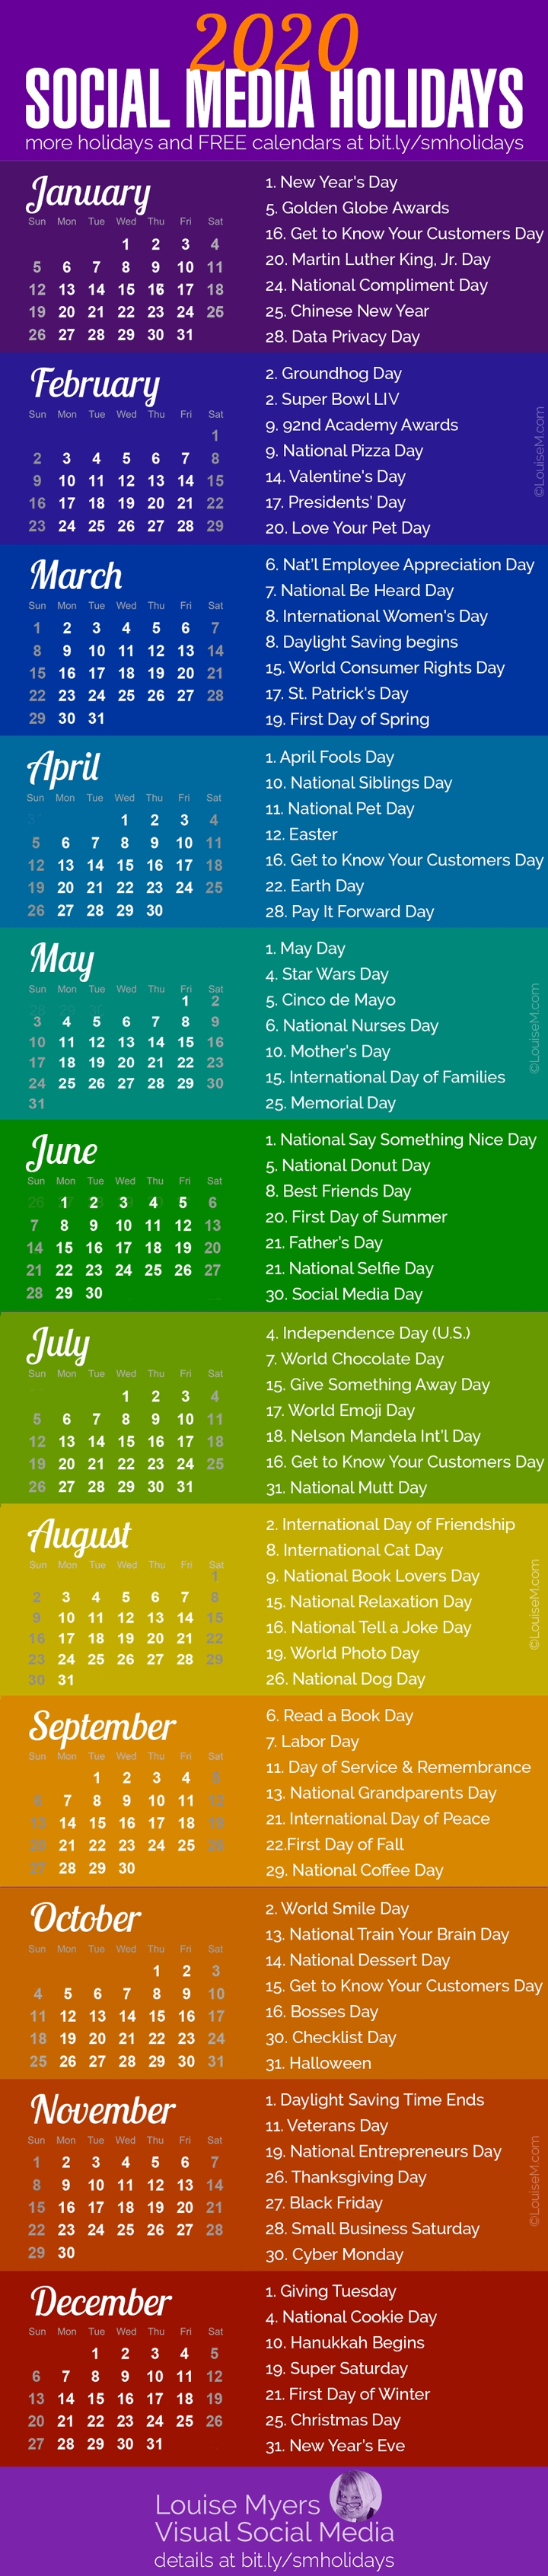 84 Social Media Holidays You Need In 2020: Indispensable! regarding Calendar Of Special Days 2020